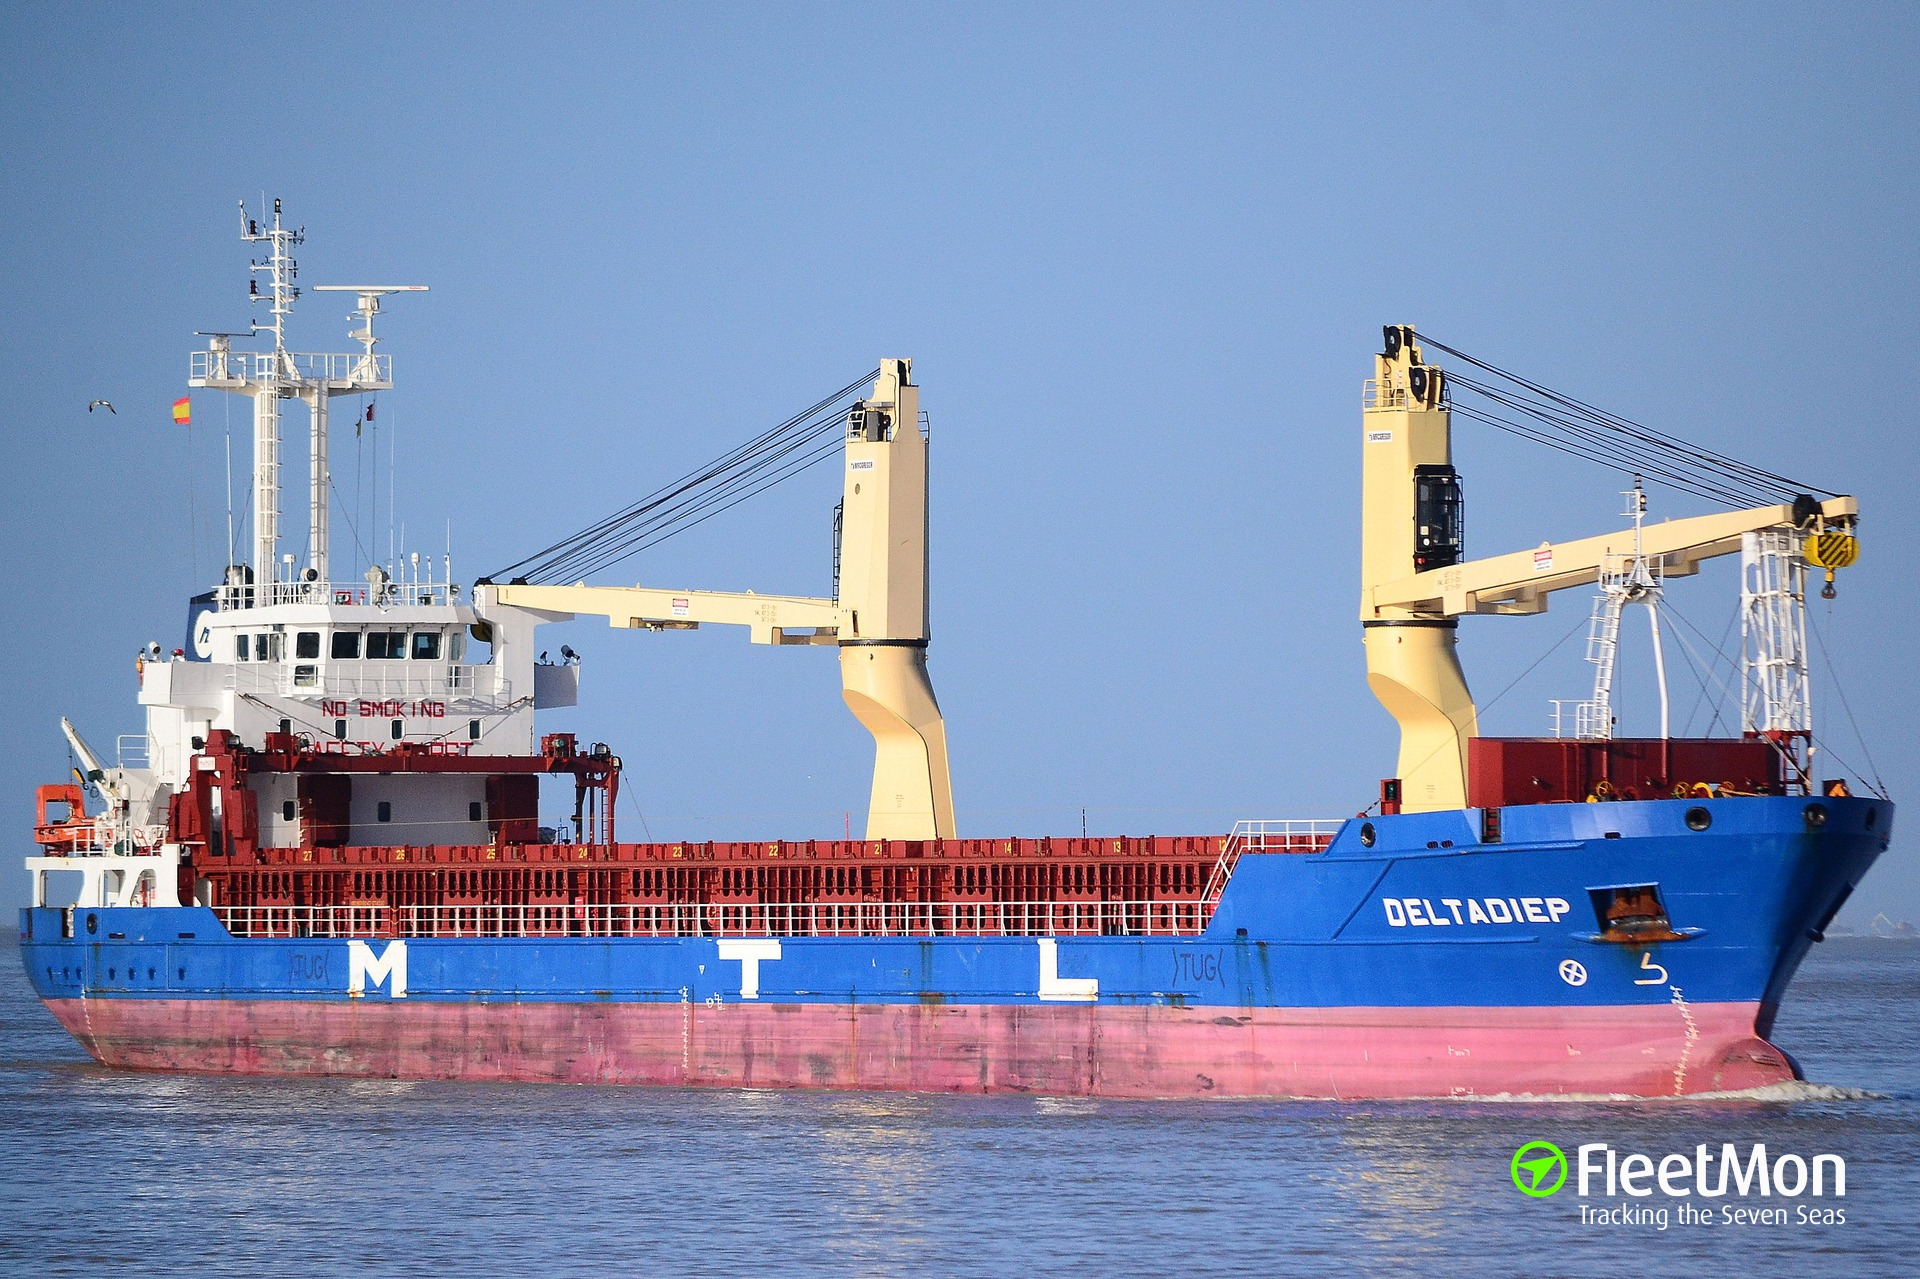 Freighter Deltadiep detained, crew arrested, after police found cocaine, Guyana